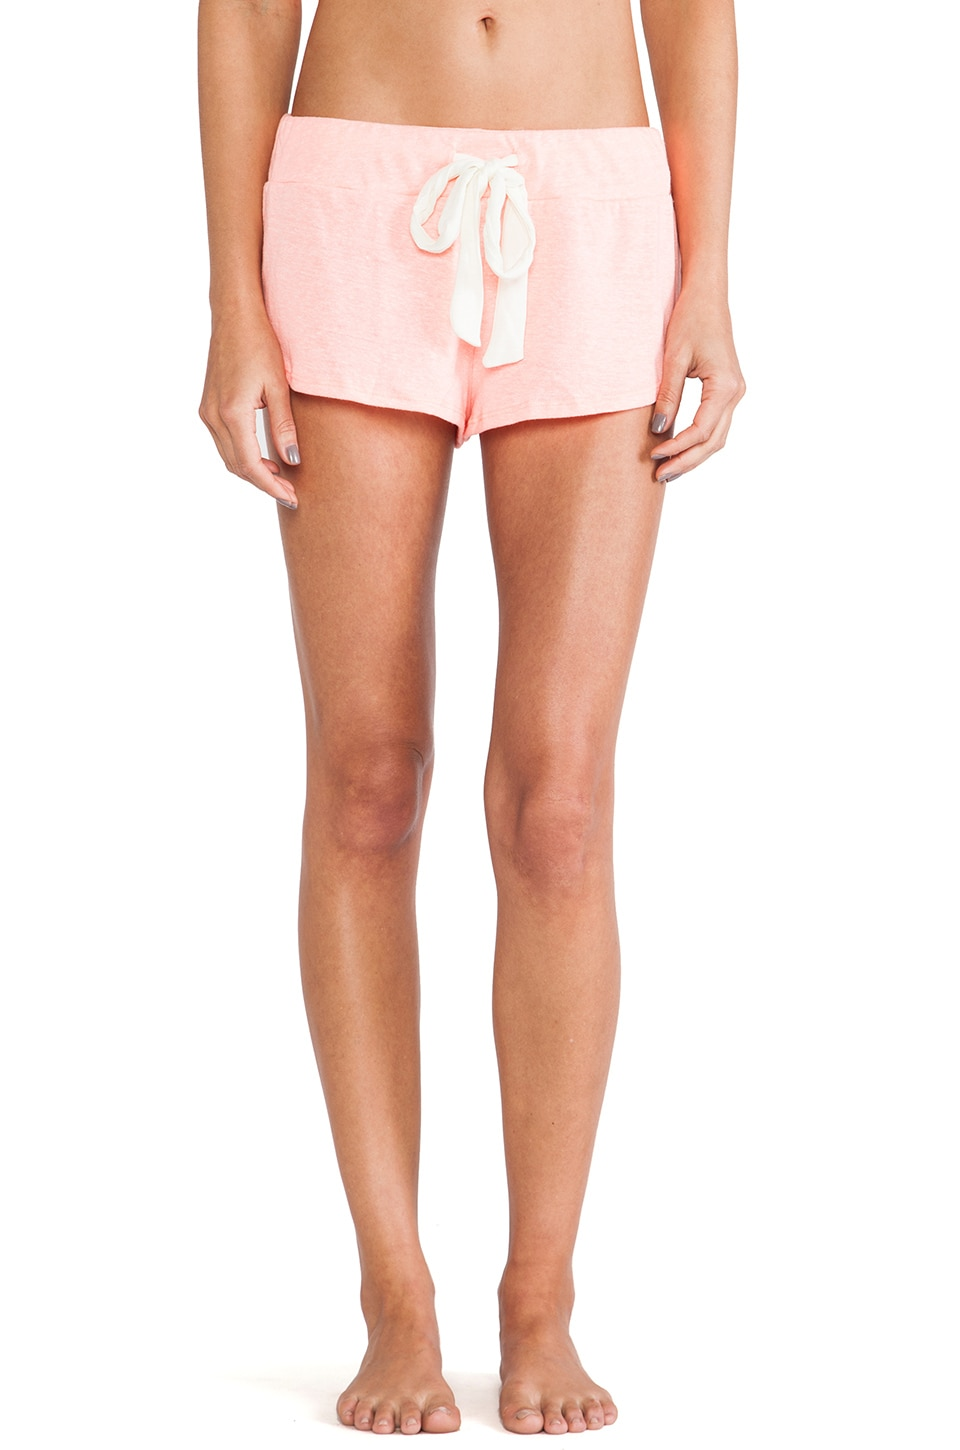 eberjey Heather Shorts in Melon Glow